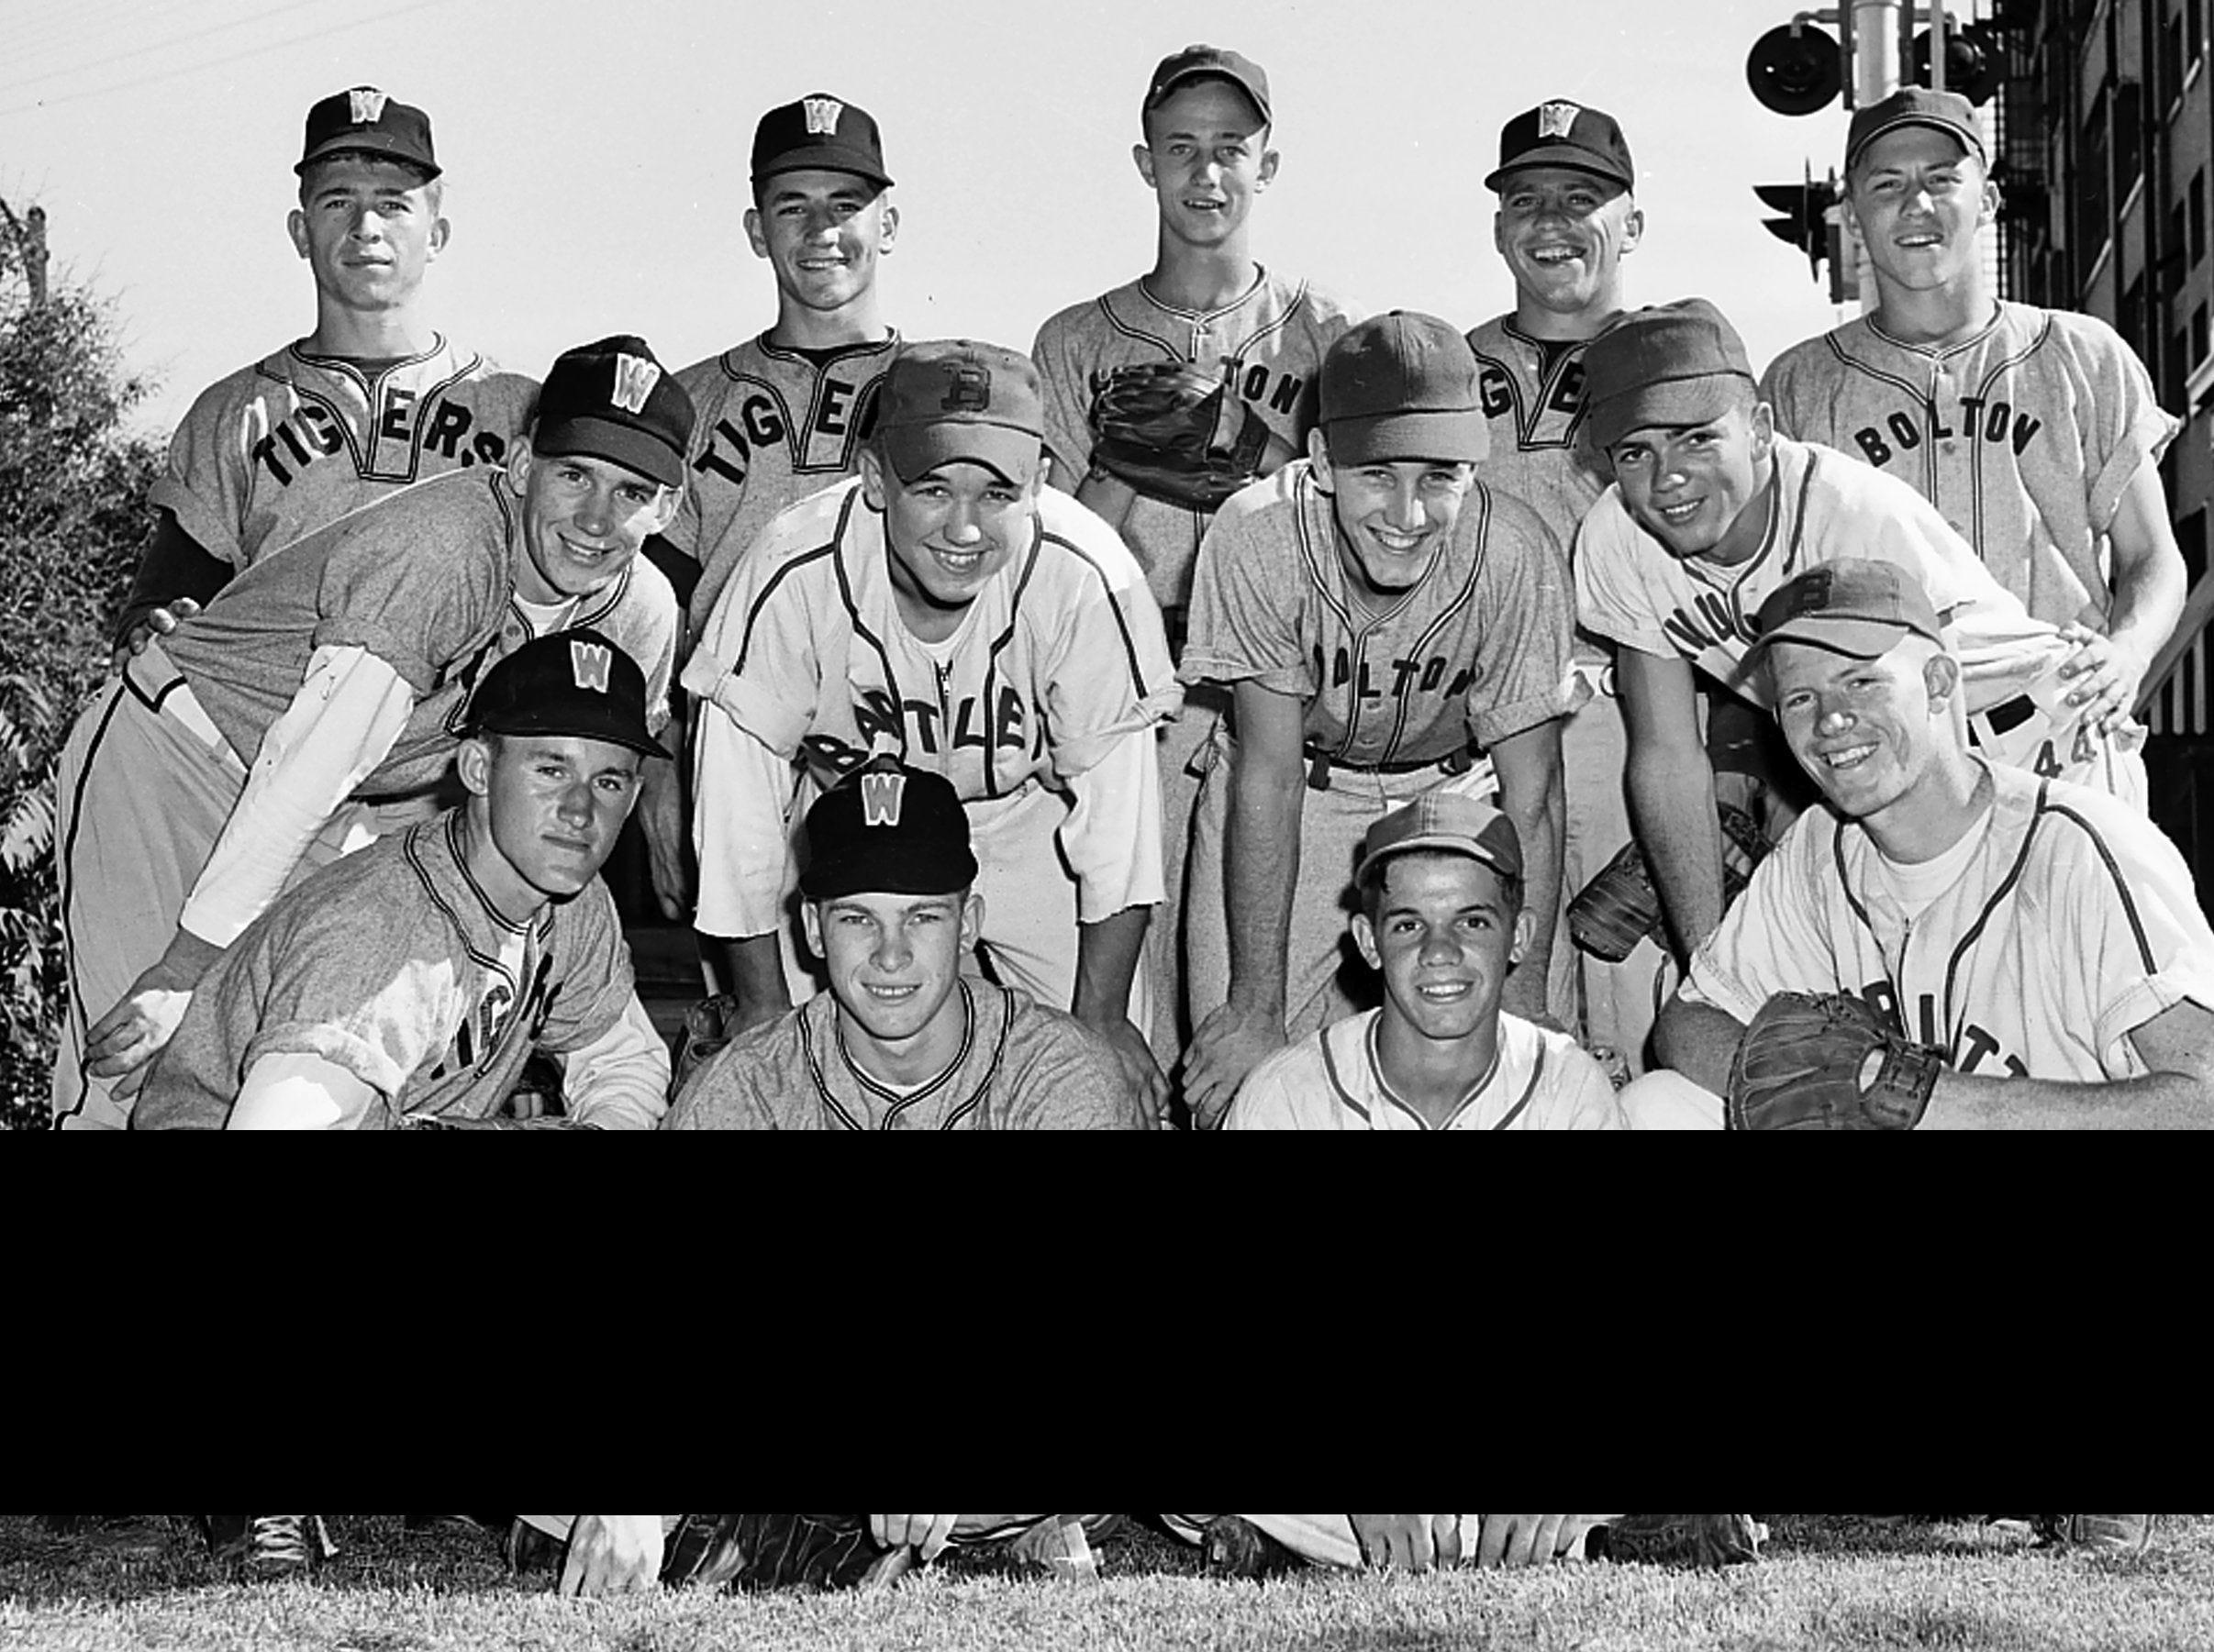 These 13 youths were the cream of the baseball crop in the Shelby County Prep league in the Spring of 1953 and are recognized on the 1953 All-County team. The are from left: (Front Row) Bill Baker, Whitehaven catcher; Bobby Walsh, Whitehaven pitcher; Carroll Rast, Millington pitcher; and David Cunningham, Bartlett catcher. Second Row: Billy Ray Dawson, Whitehaven ourfielder; Joe Stalls, Bartlett outfielder; Snowden Harrell, Bolton outfielder; and Charles Forbes, Millington outfielder. Back Row: Jamie McRae, Whitehaven shortstop; Tommy Keough, Collierville pitcher; Leonard Biggs, Whitehaven third base; Bobby Williams, Bolton utility, Jackie Hollie, Whitehaven second base and Harry Nicholson, Bolton first base.